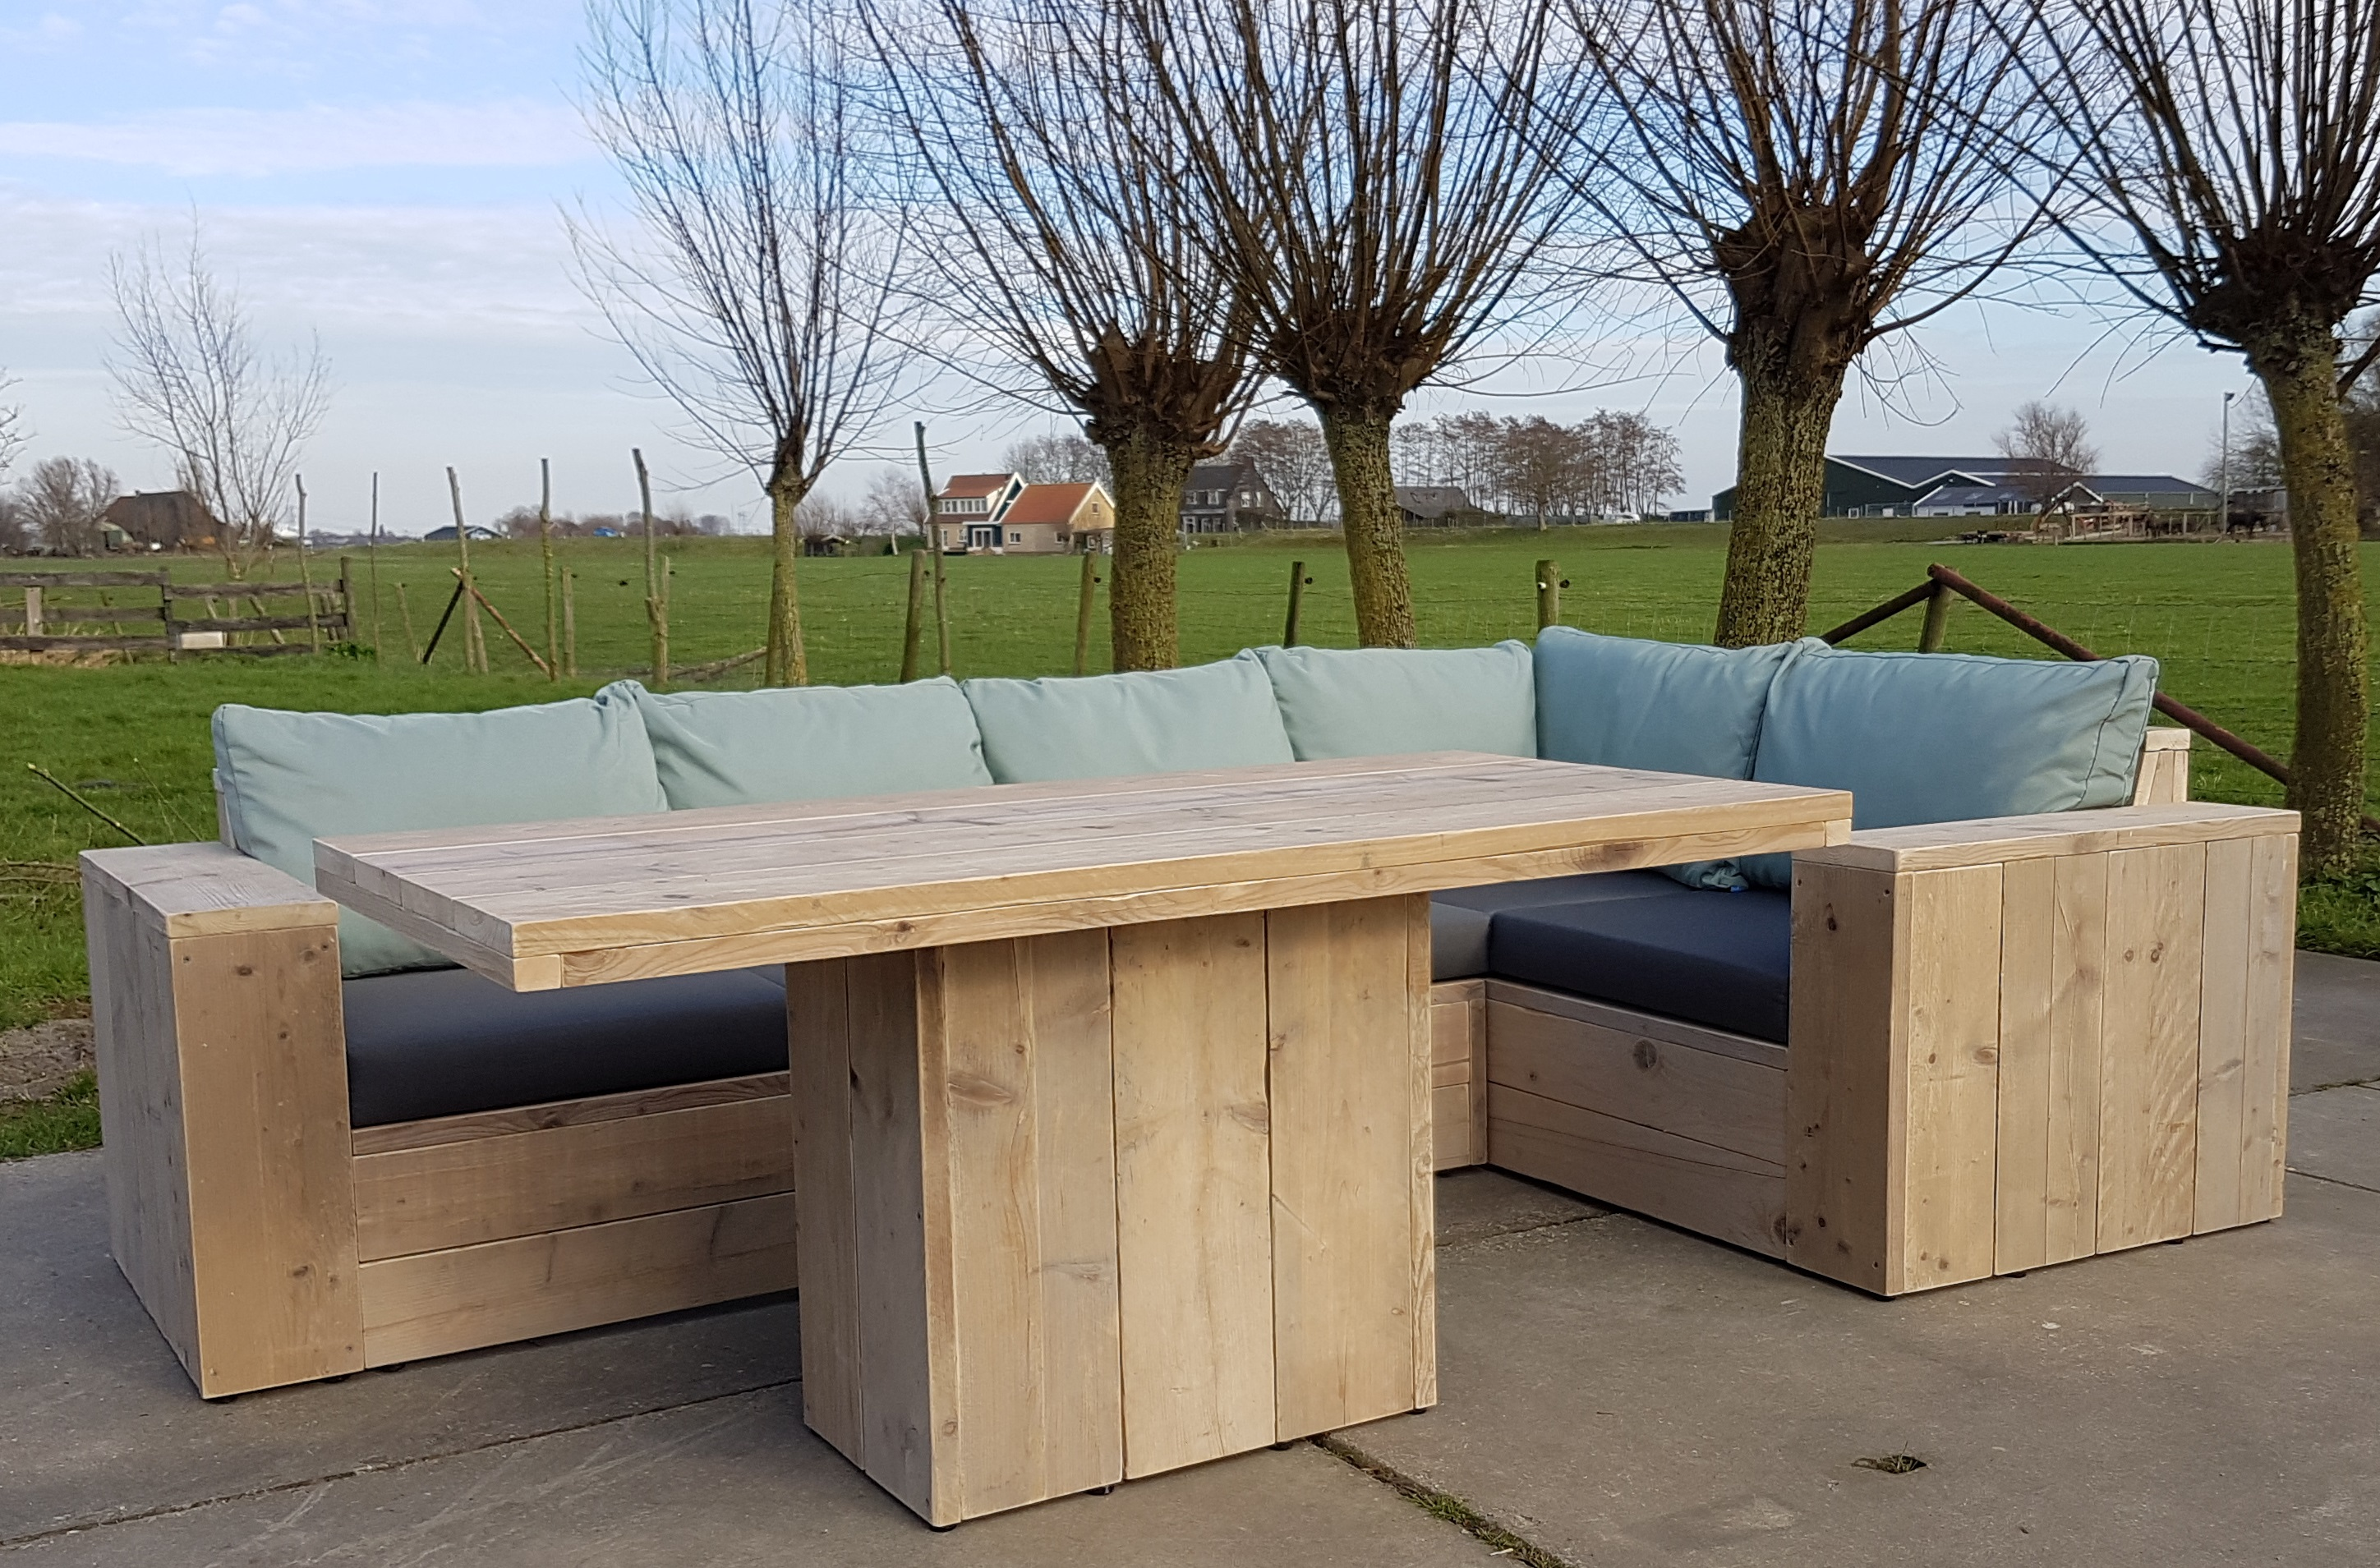 Tuin Dining Sets : Dinner set tuin good good textileen lounge hoekbank with dinner